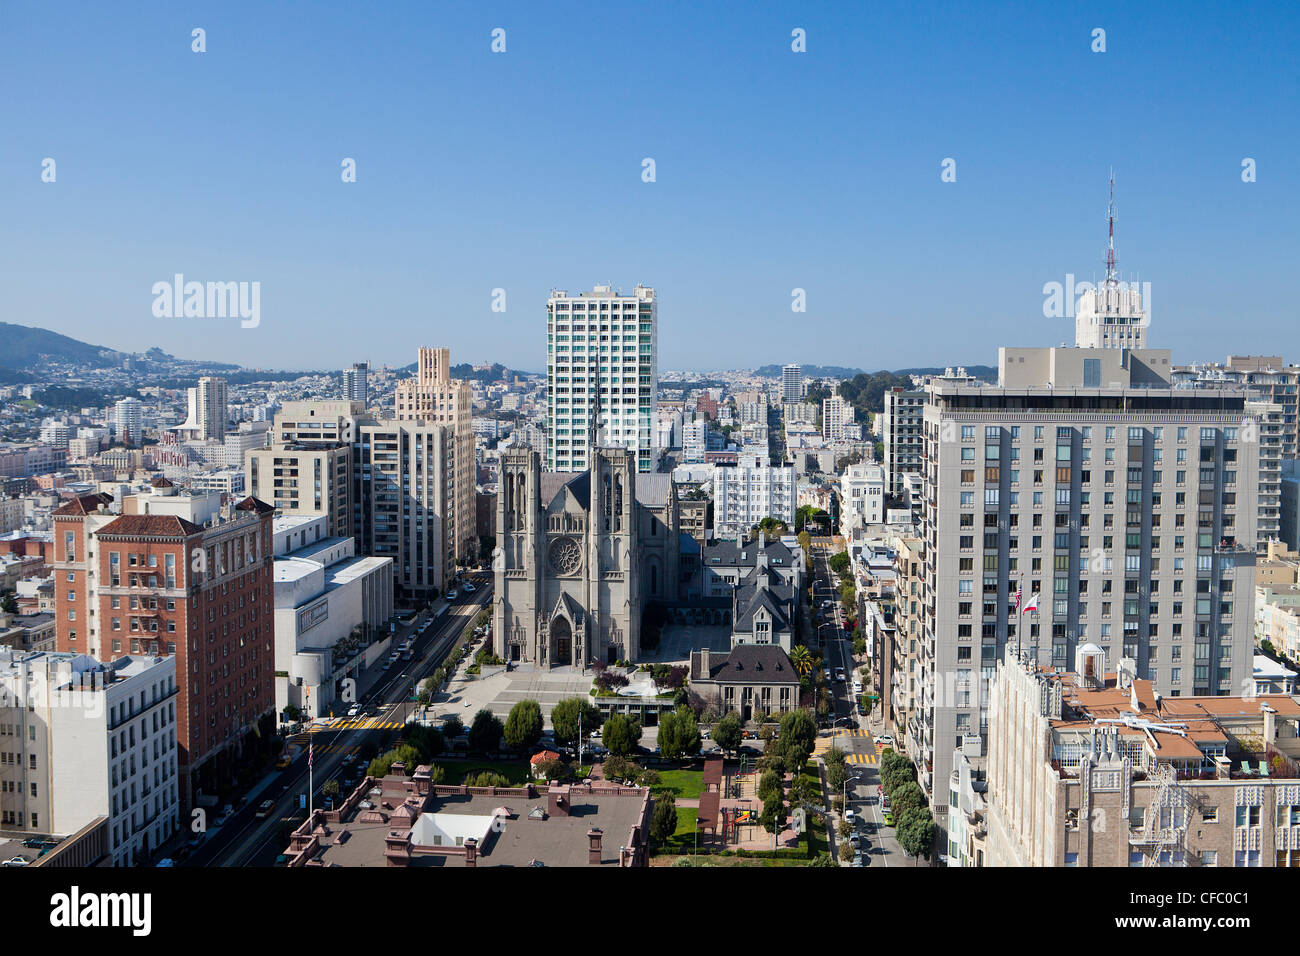 USA, United States, America, California, San Francisco, City, Grace Cathedral, church, downtown, skyline, square - Stock Image